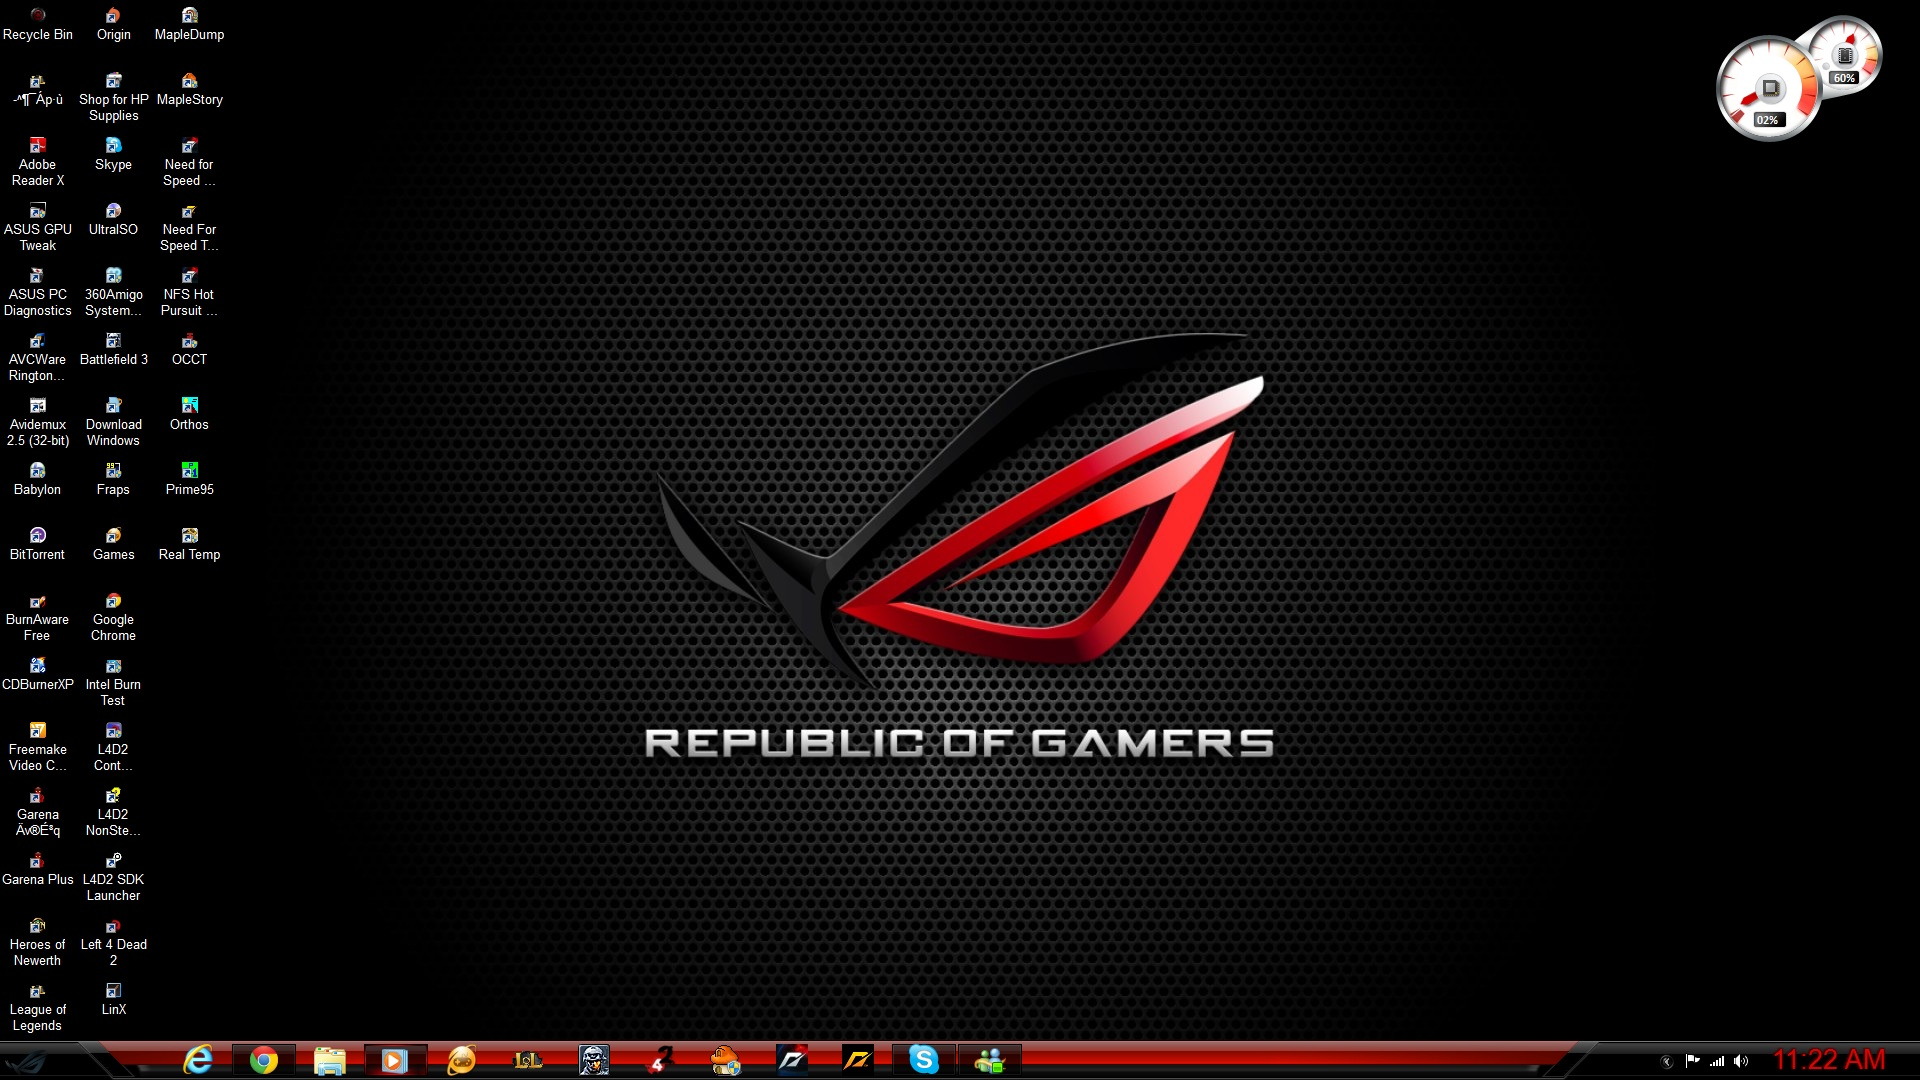 Post your desktop 2012 - Page 134 - Overclock net - An Overclocking